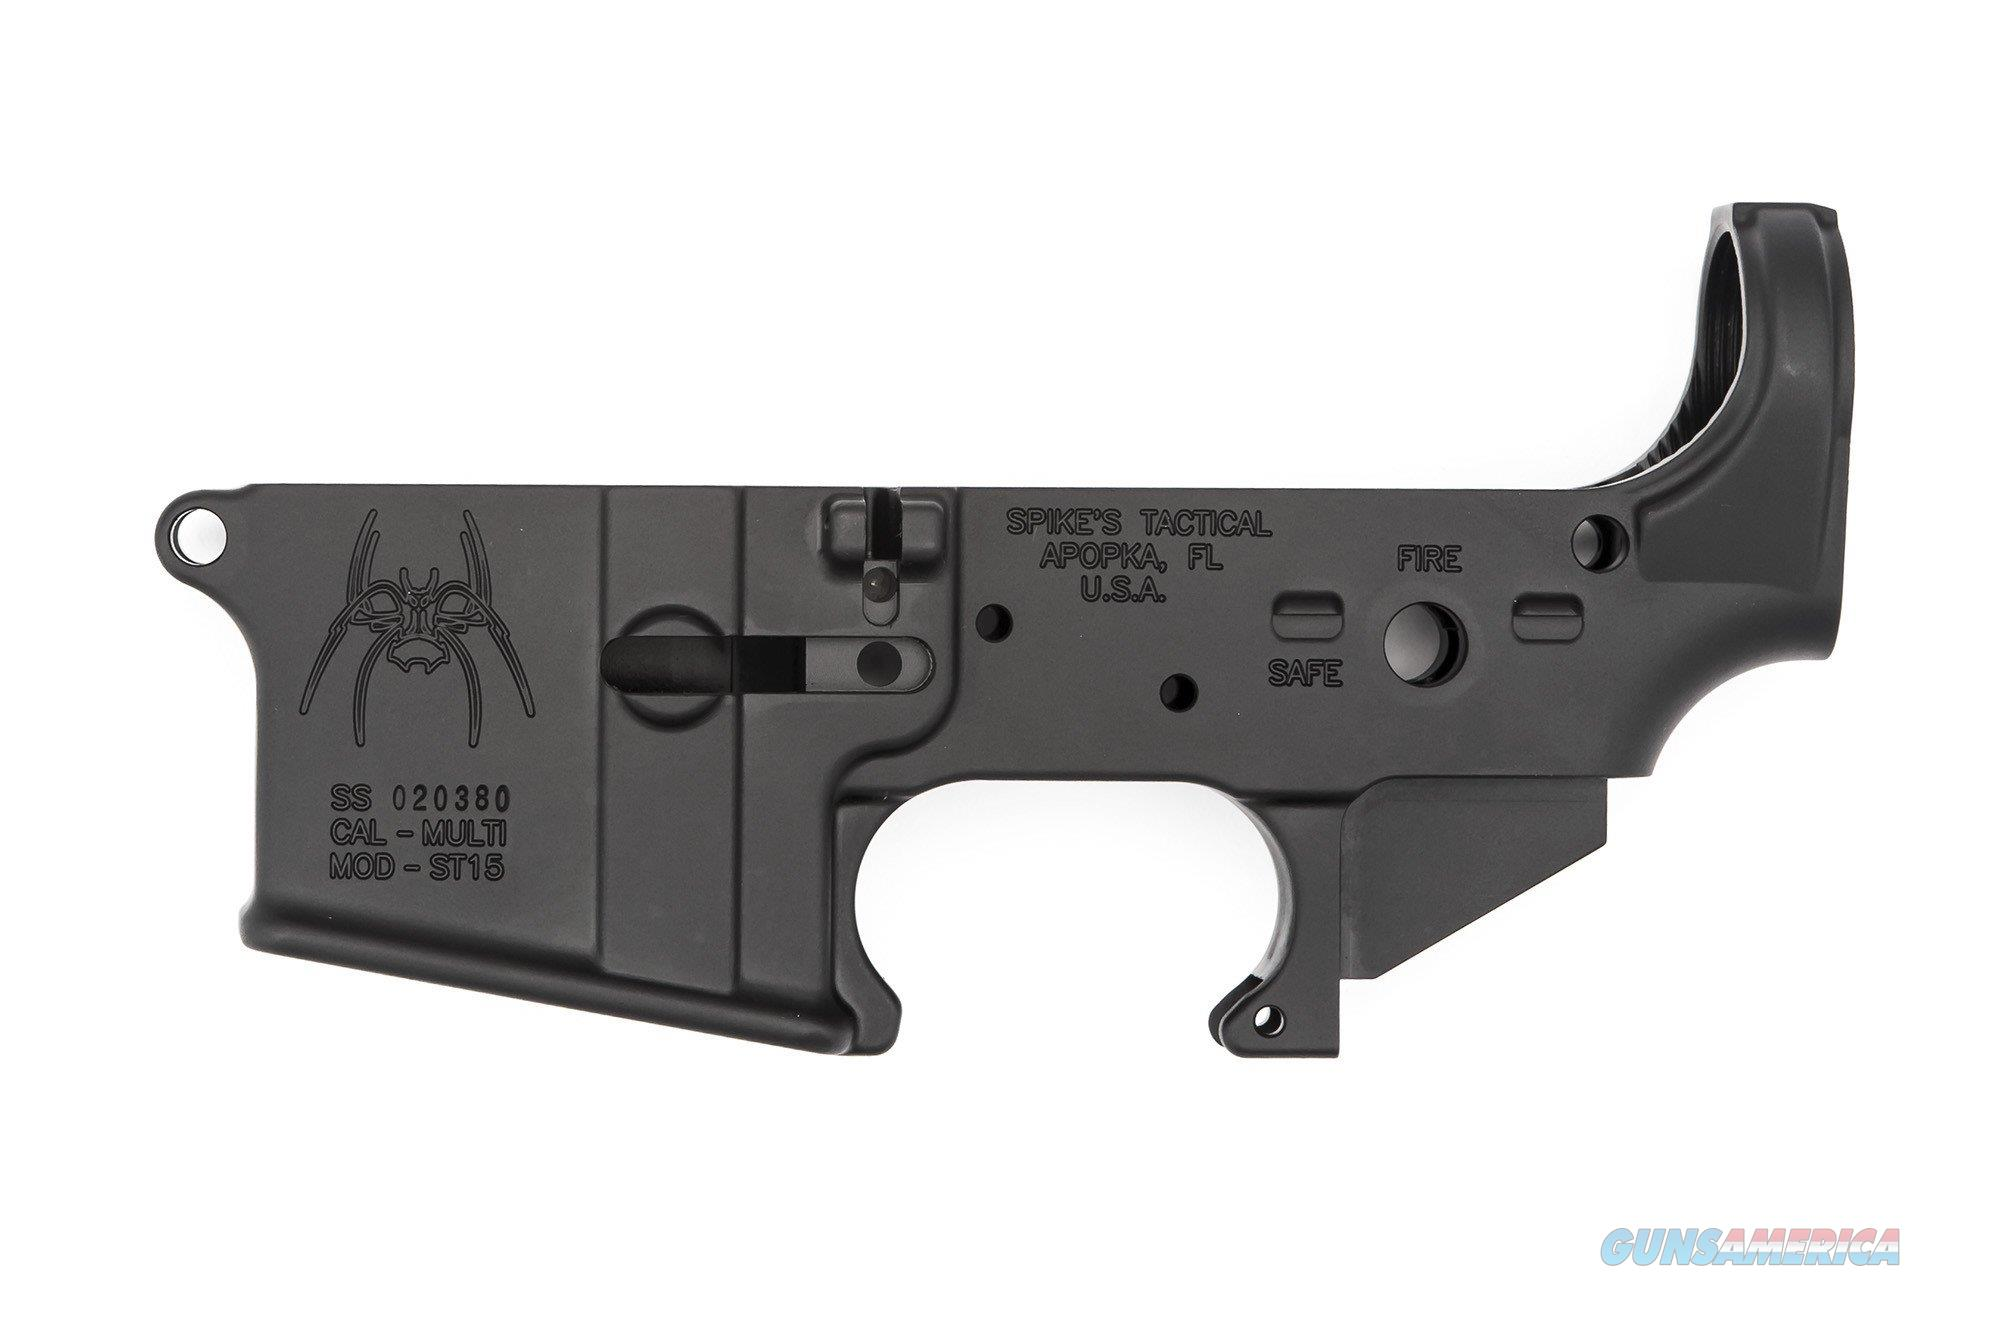 Spike's Tactical Spider Stripped Lower Receiver (Fire/Safe)  Guns > Pistols > Spikes Tactical Pistols